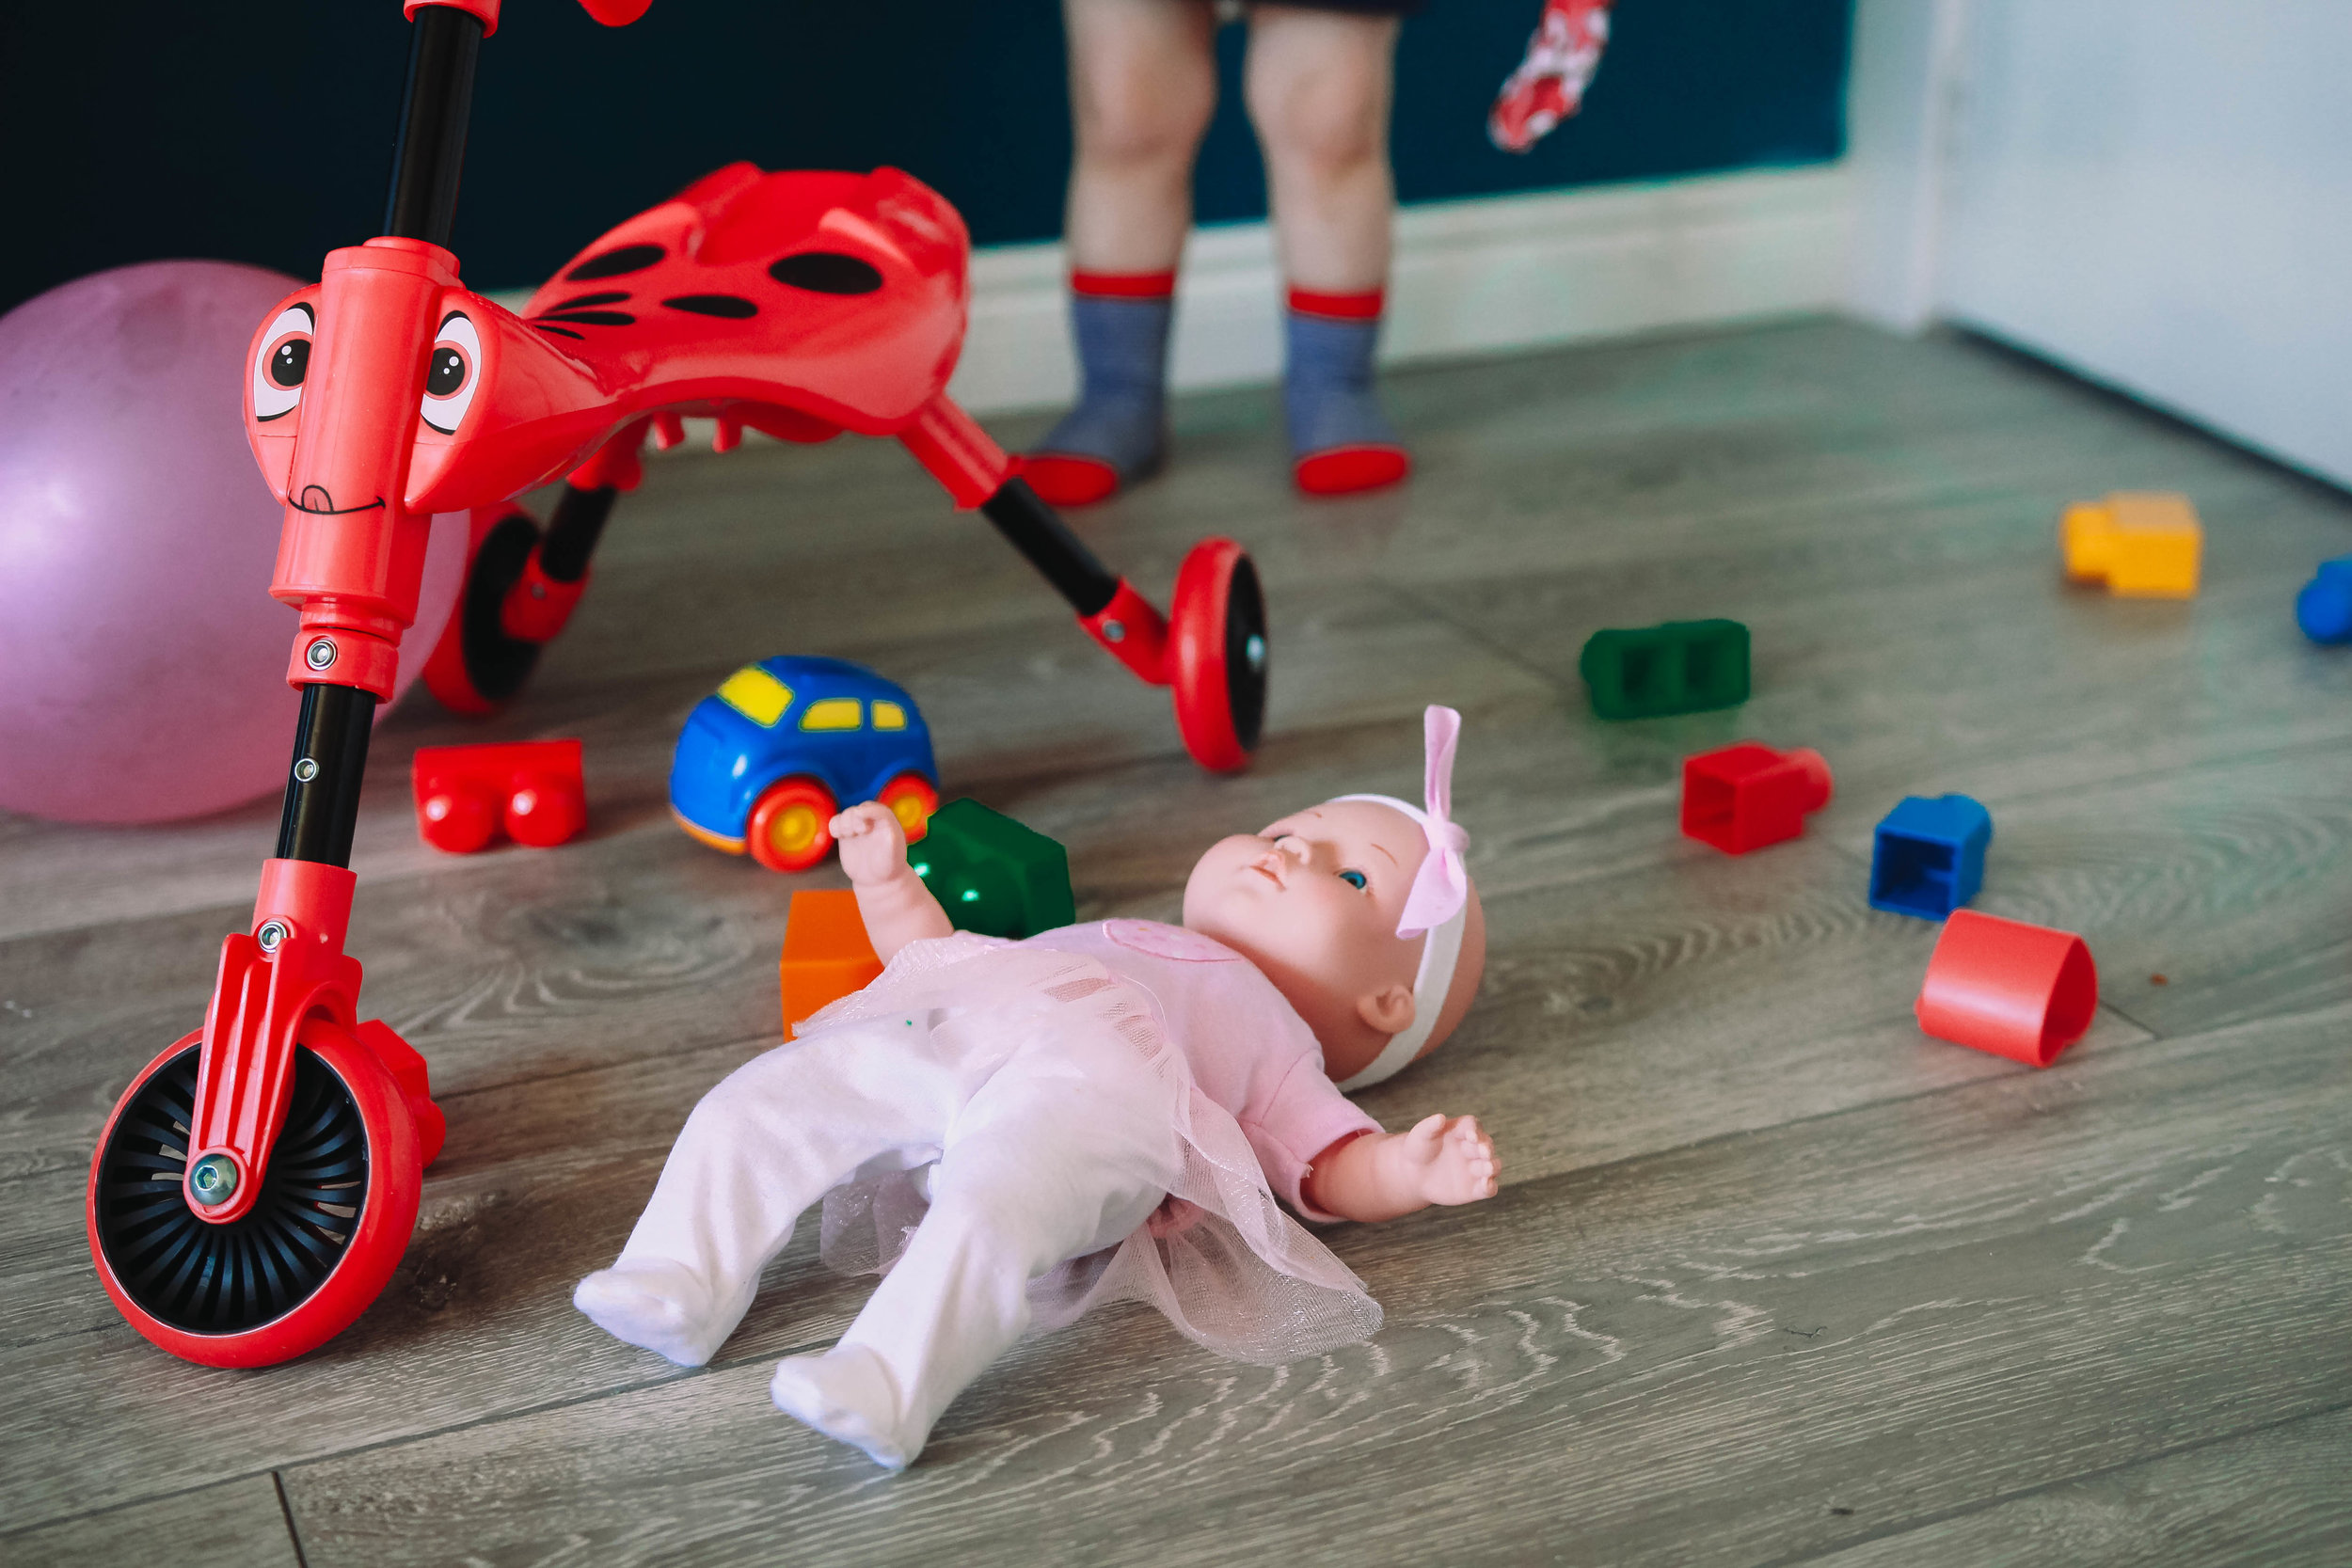 boys can't play with dolls gender stereotyping